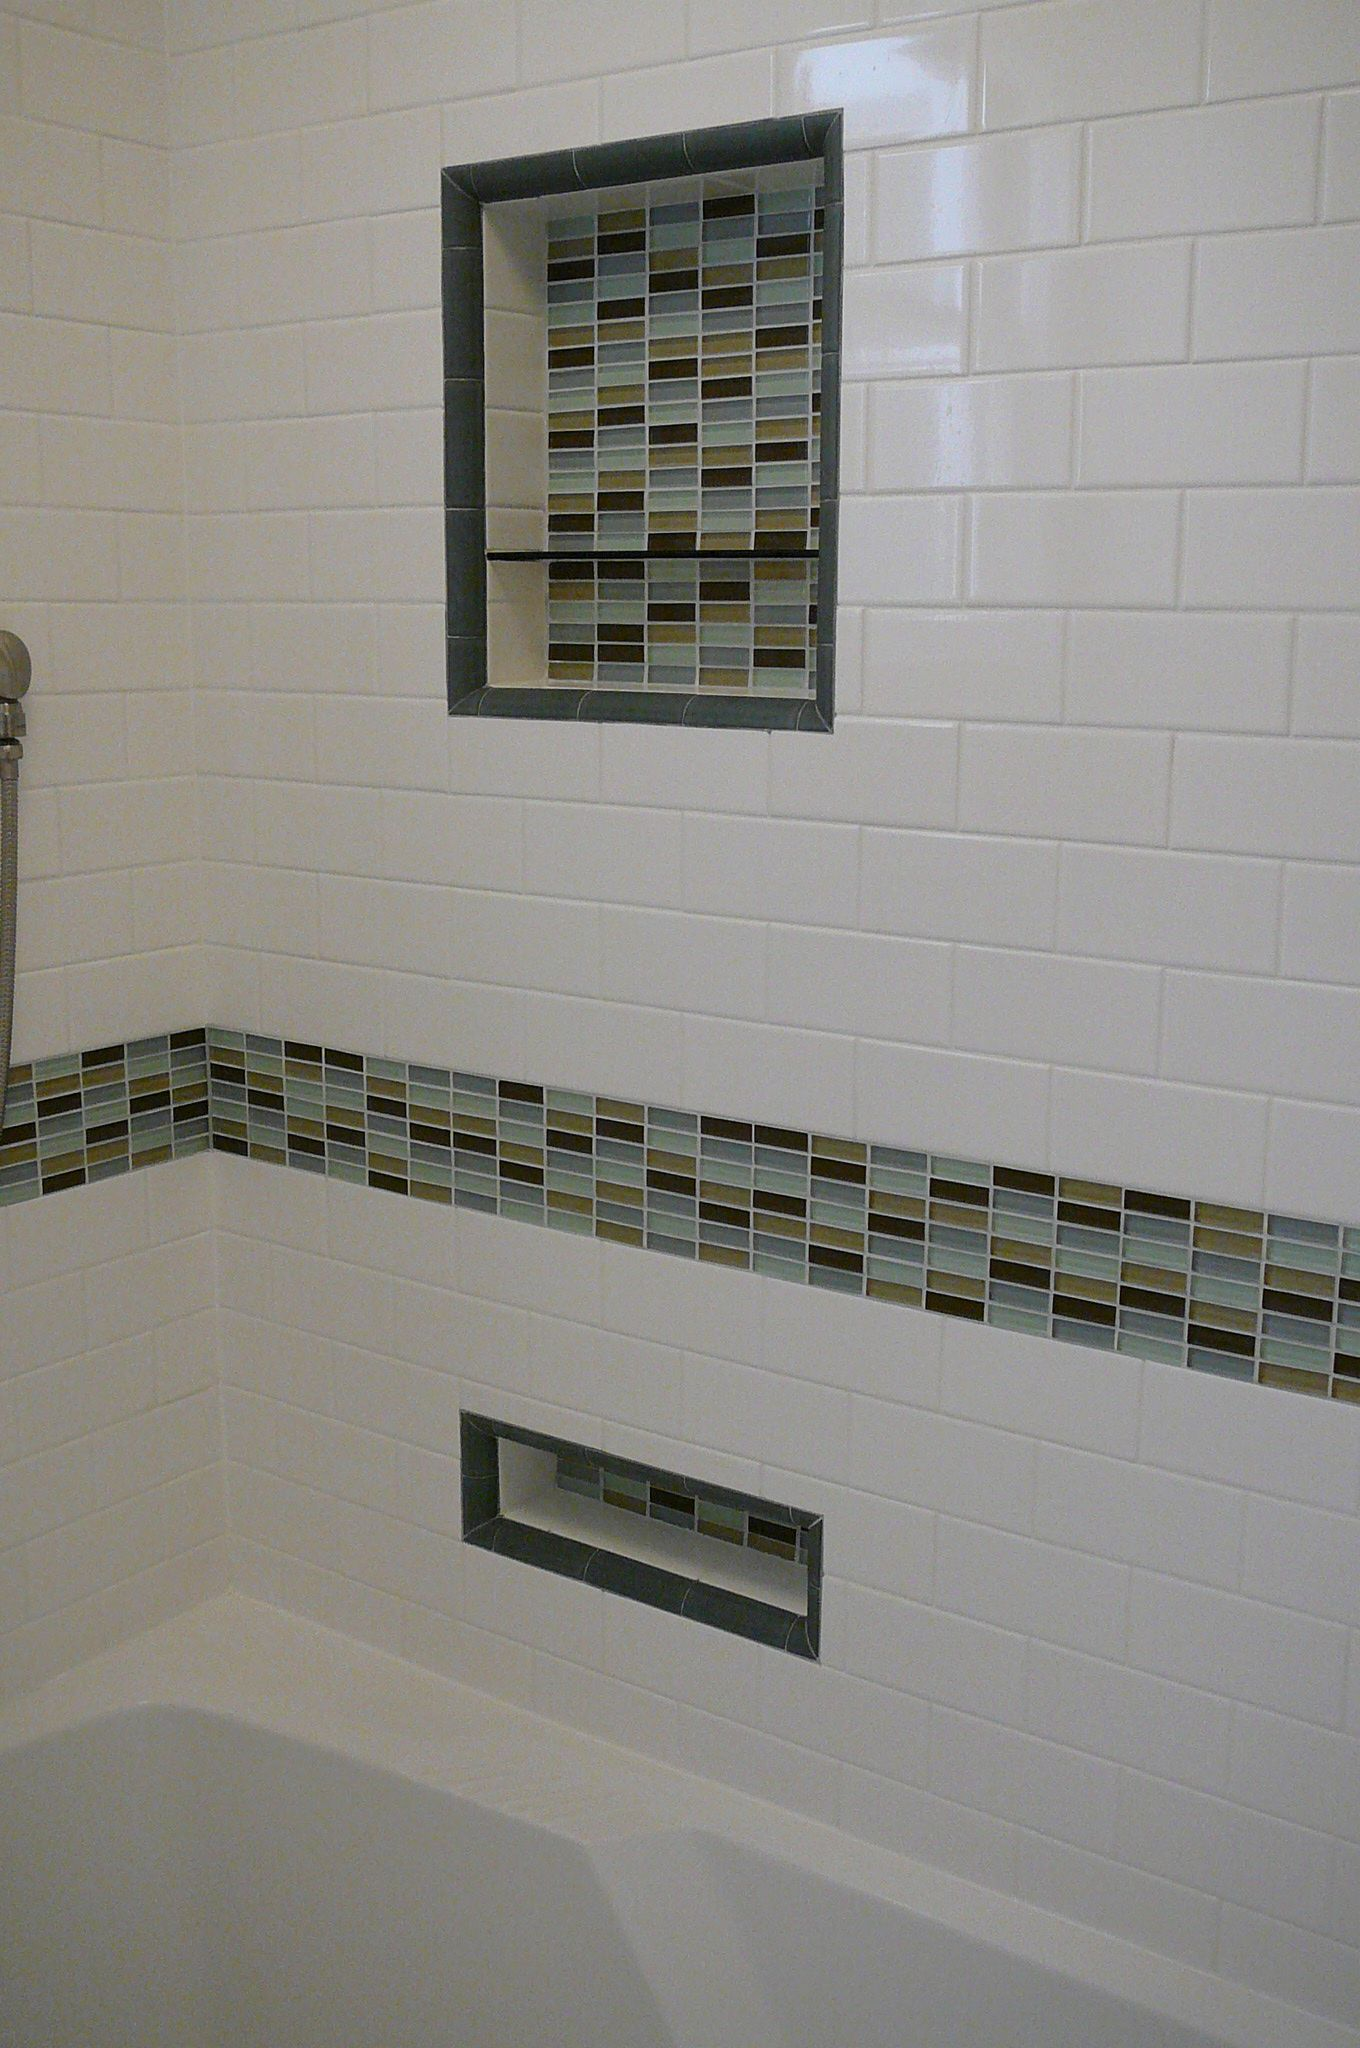 White Square Tile With Glass Rectangular Tile Accents | Bathroom Glass Tile  Accent Ideas